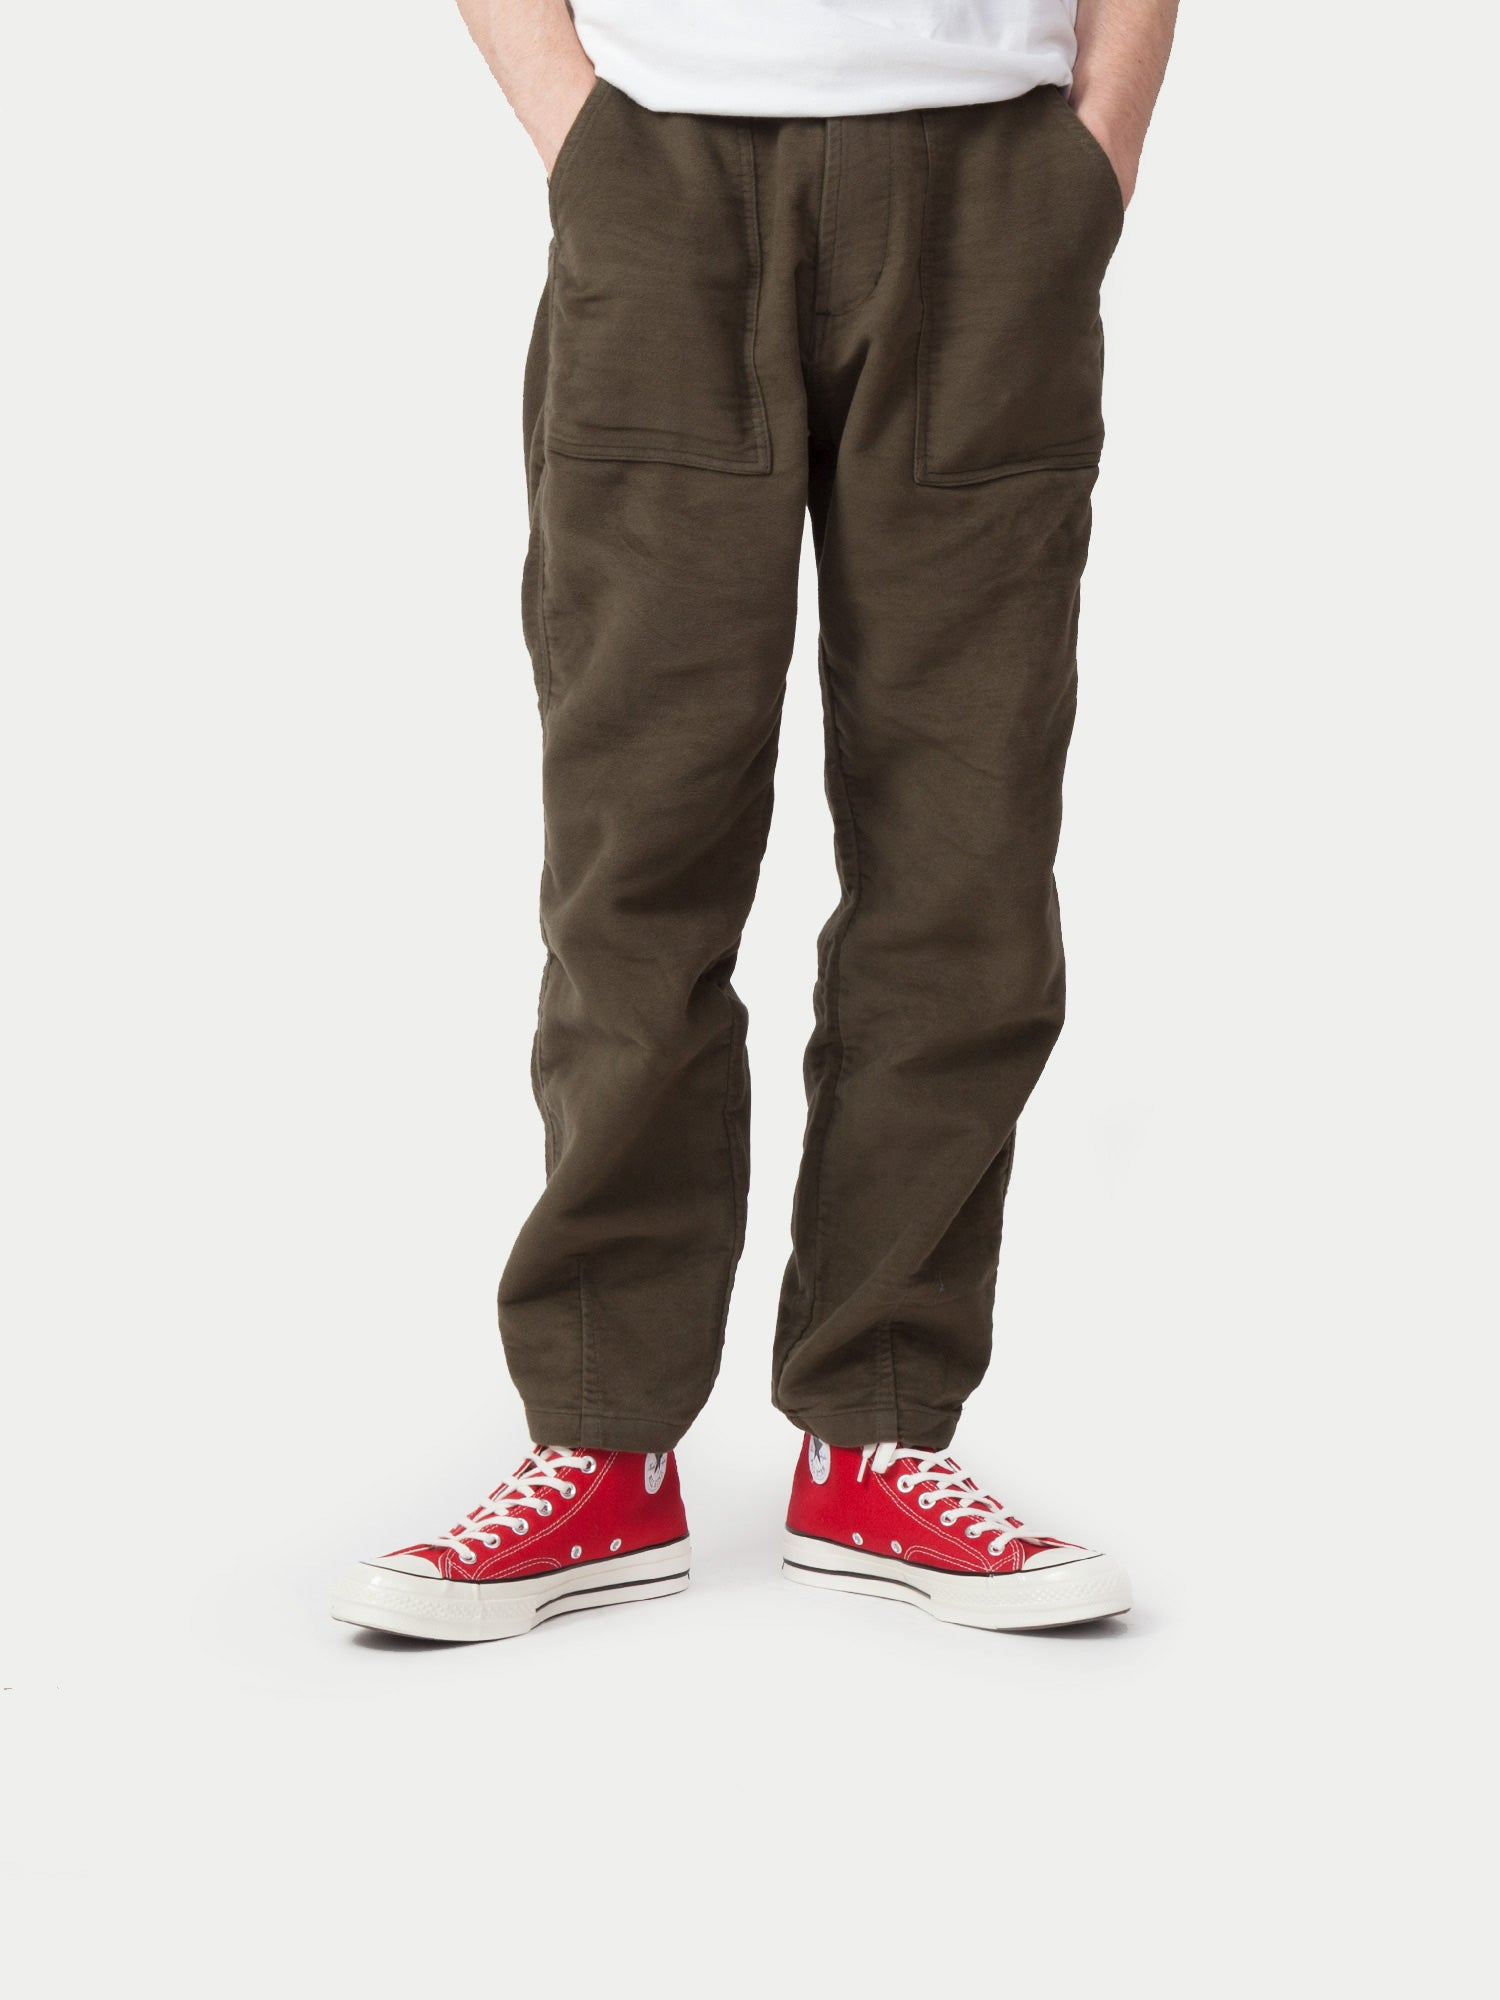 Universal Works Fatigue Pants (Moleskin Moss) 11